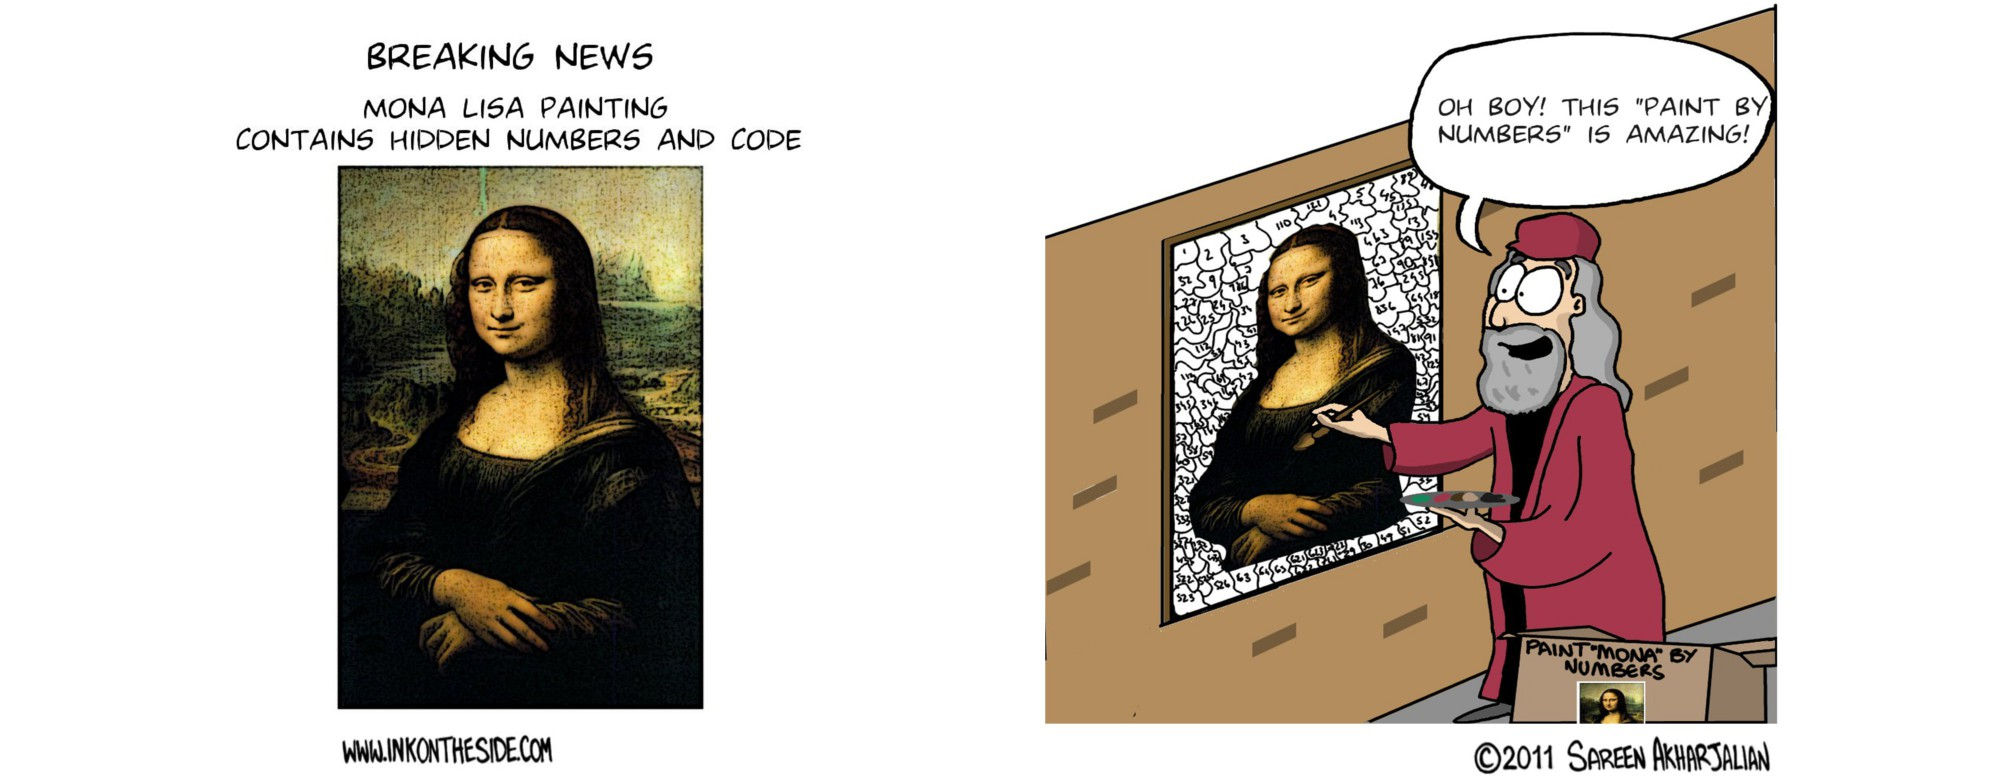 Breaking News: Mona Lisa Contains Secret Codes